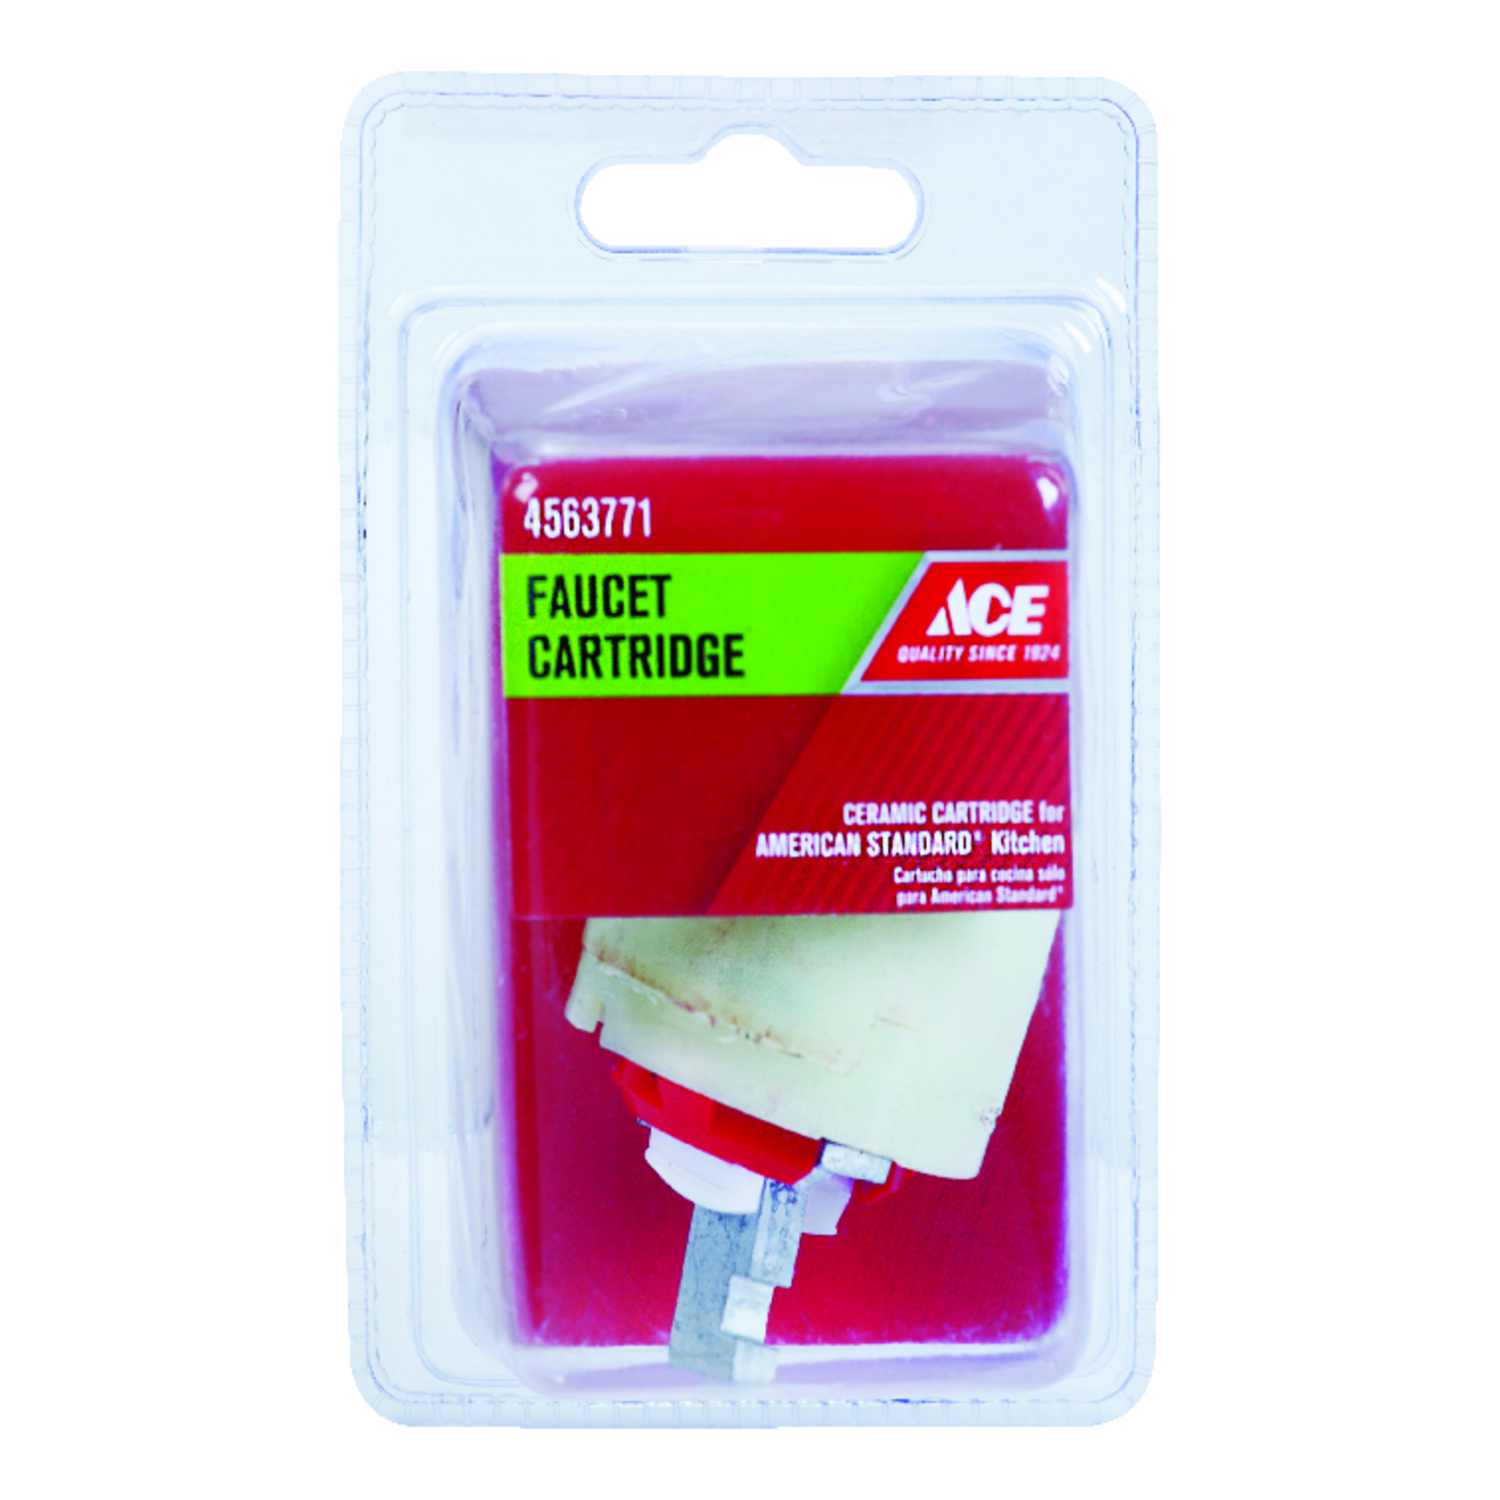 Ace Hot and Cold Faucet Cartridge For American Standard - Ace Hardware